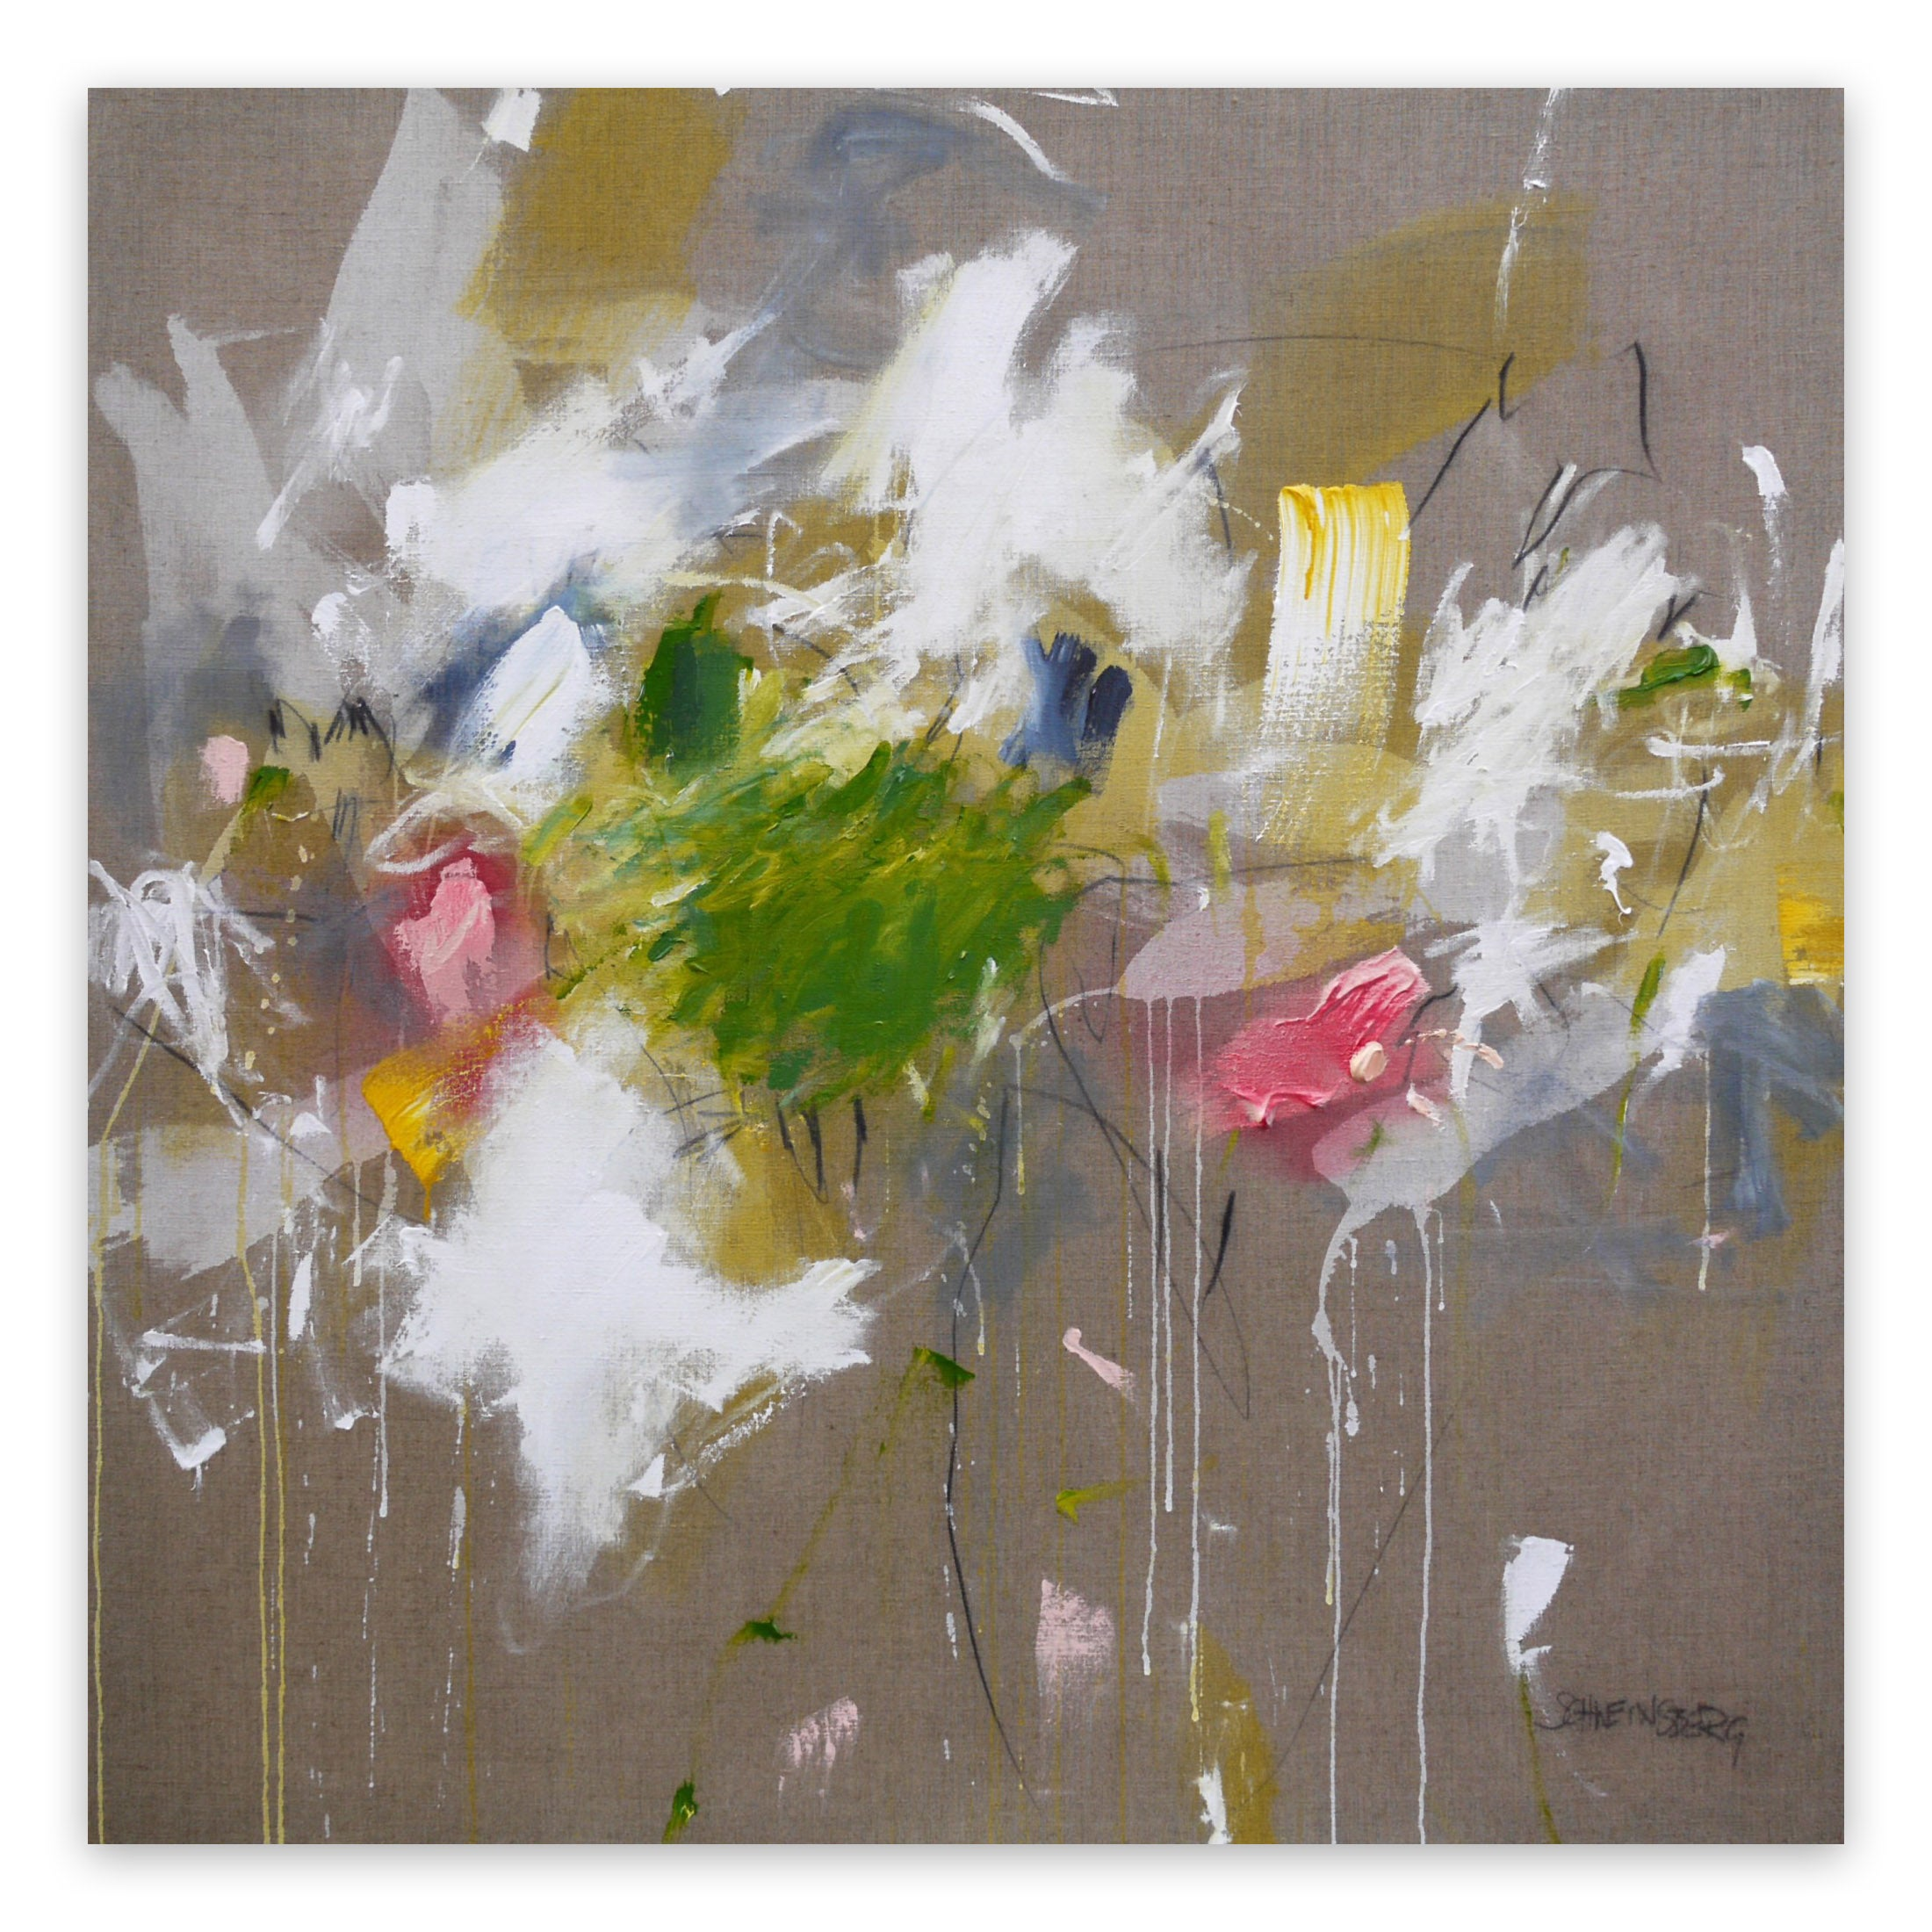 A Breath of Summer V (Abstract Expressionism painting)